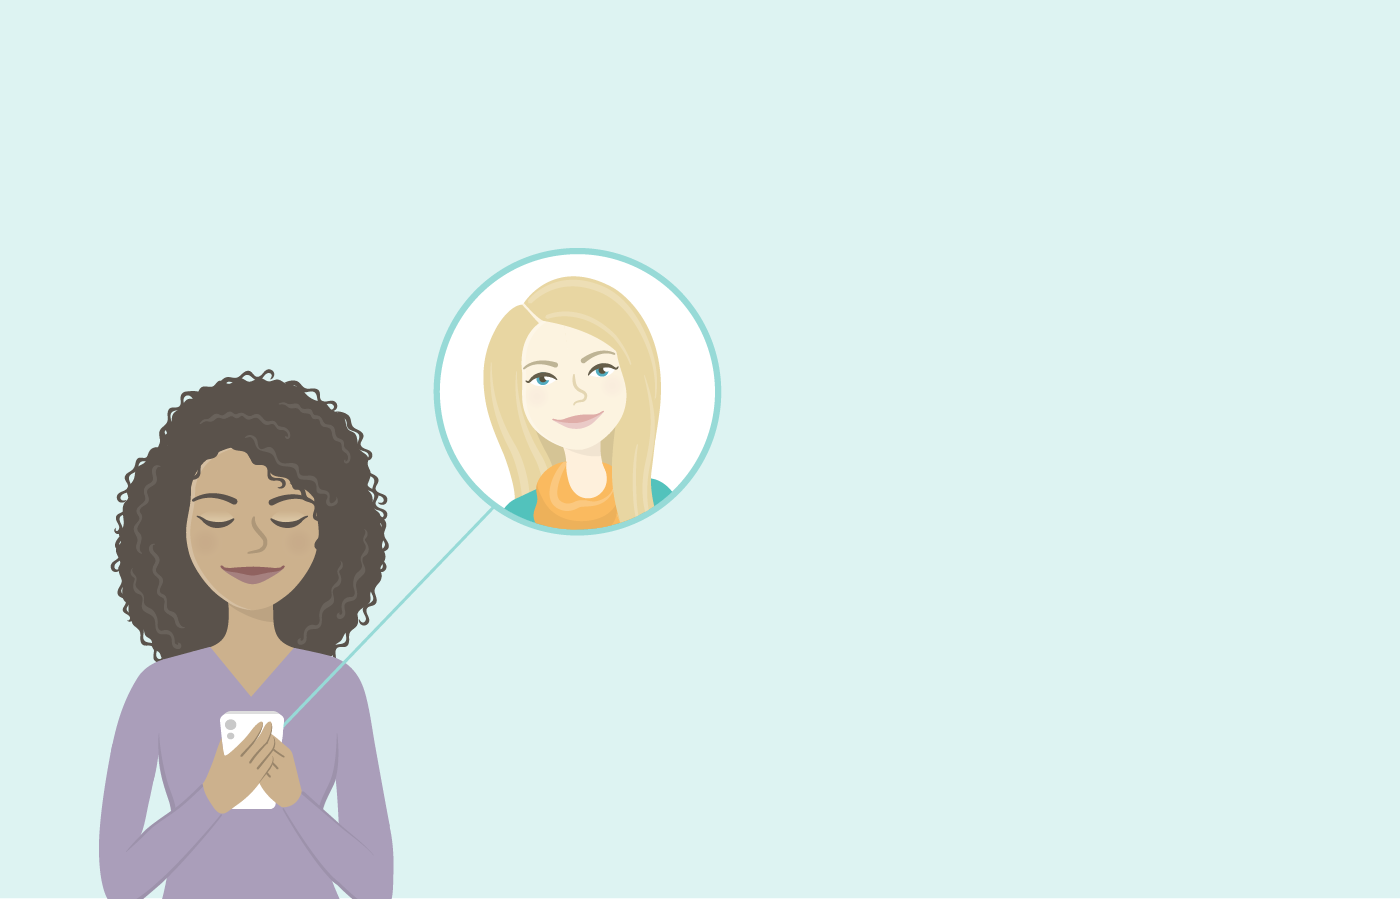 Illustration of woman using travel app chat with her friend's face in a bubble to the right